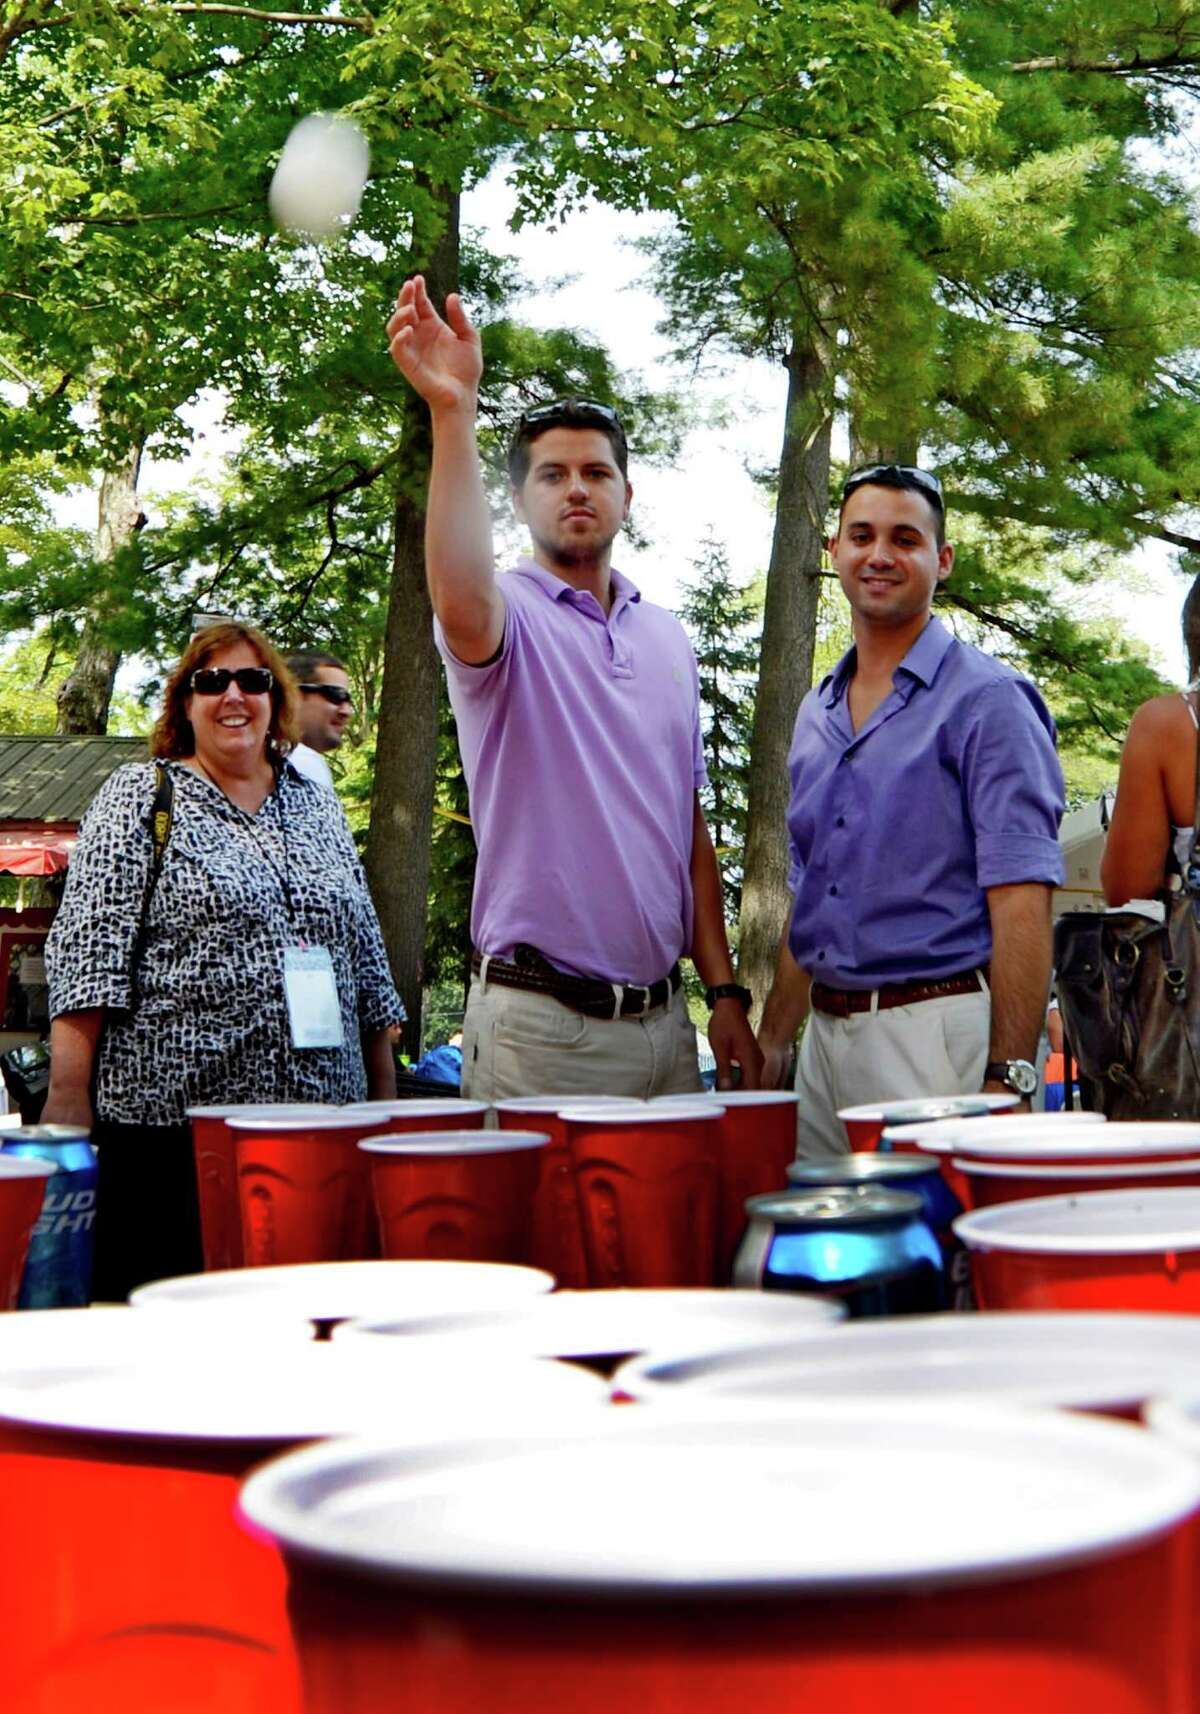 Ryan Jordan, left and Dean Chiusano enjoy a game of beer pong on Travers Day at the Saratoga Race Course in Saratoga Springs, N.Y. Aug. 25, 2012. (Skip Dickstein/Times Union)